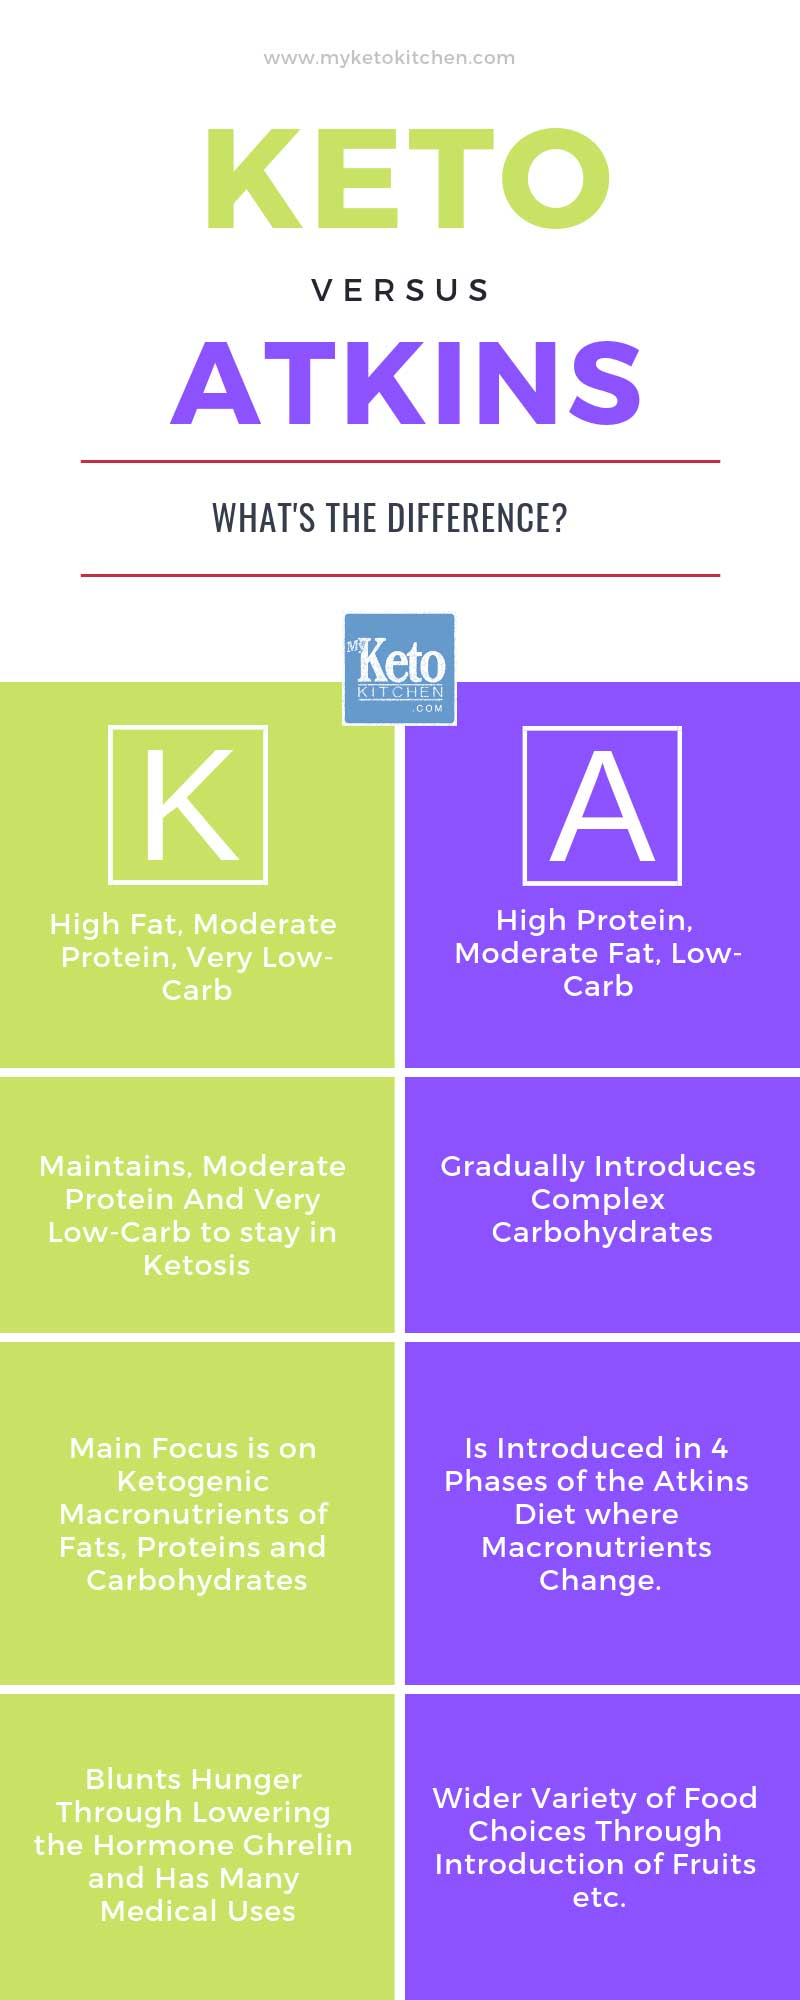 Keto vs Atkins Diet Differences Infographic